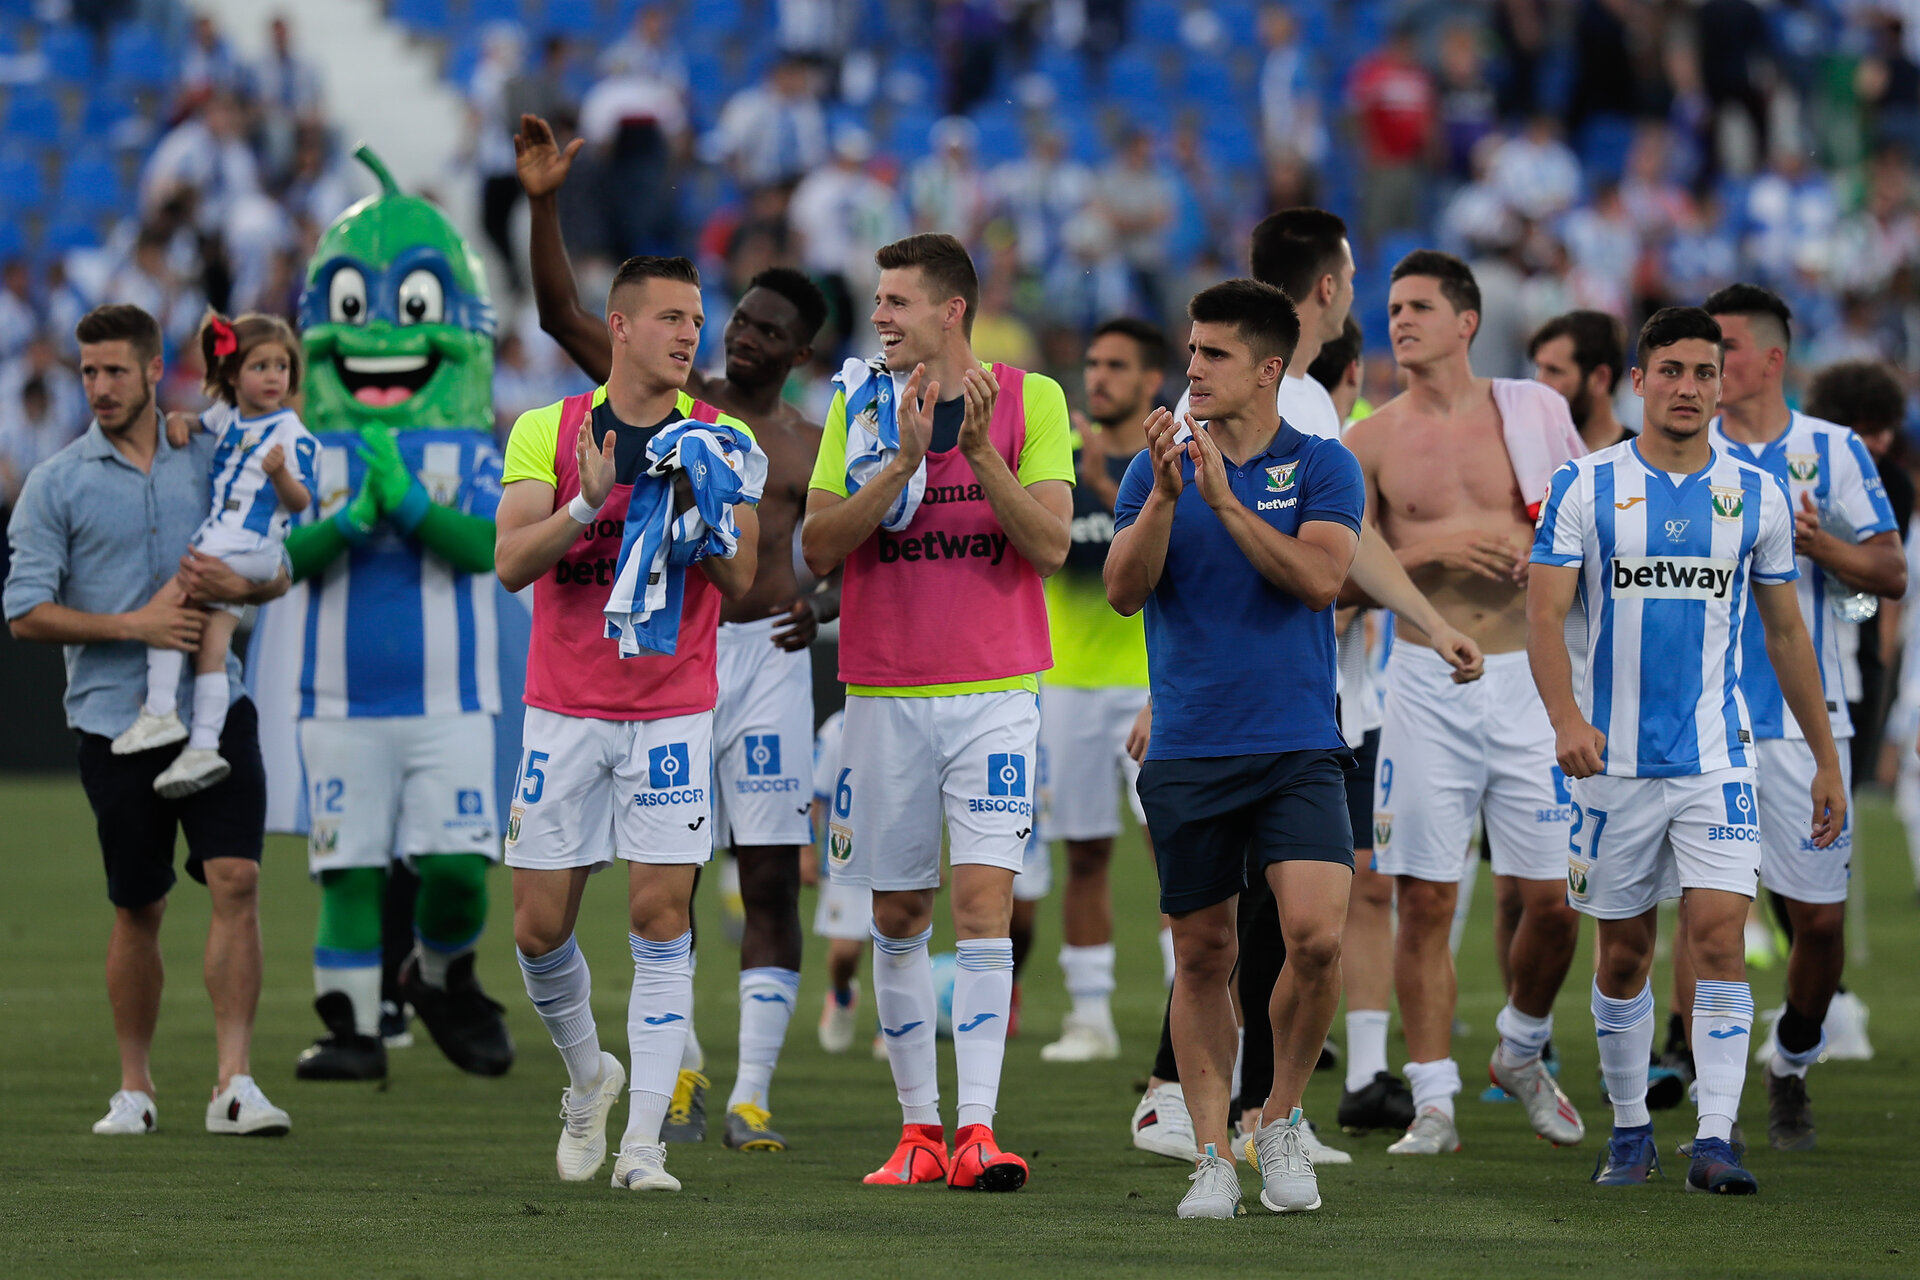 LEGANES, SPAIN - MAY 12: (From L to R) Deportivo Leganes players Ivan Cuellar, Rodrigo Tarin, Kenneth Omeruo, Gerard Gumbau, Unai Bustinza, Guido Marcelo Carrillo and Oscar Rodriguez Arnaiz acknowledges the audience after the La Liga match between CD Leganes and RCD Espanyol at Estadio Municipal de Butarque on May 12, 2019 in Leganes, Spain. (Photo by Gonzalo Arroyo Moreno/Getty Images)